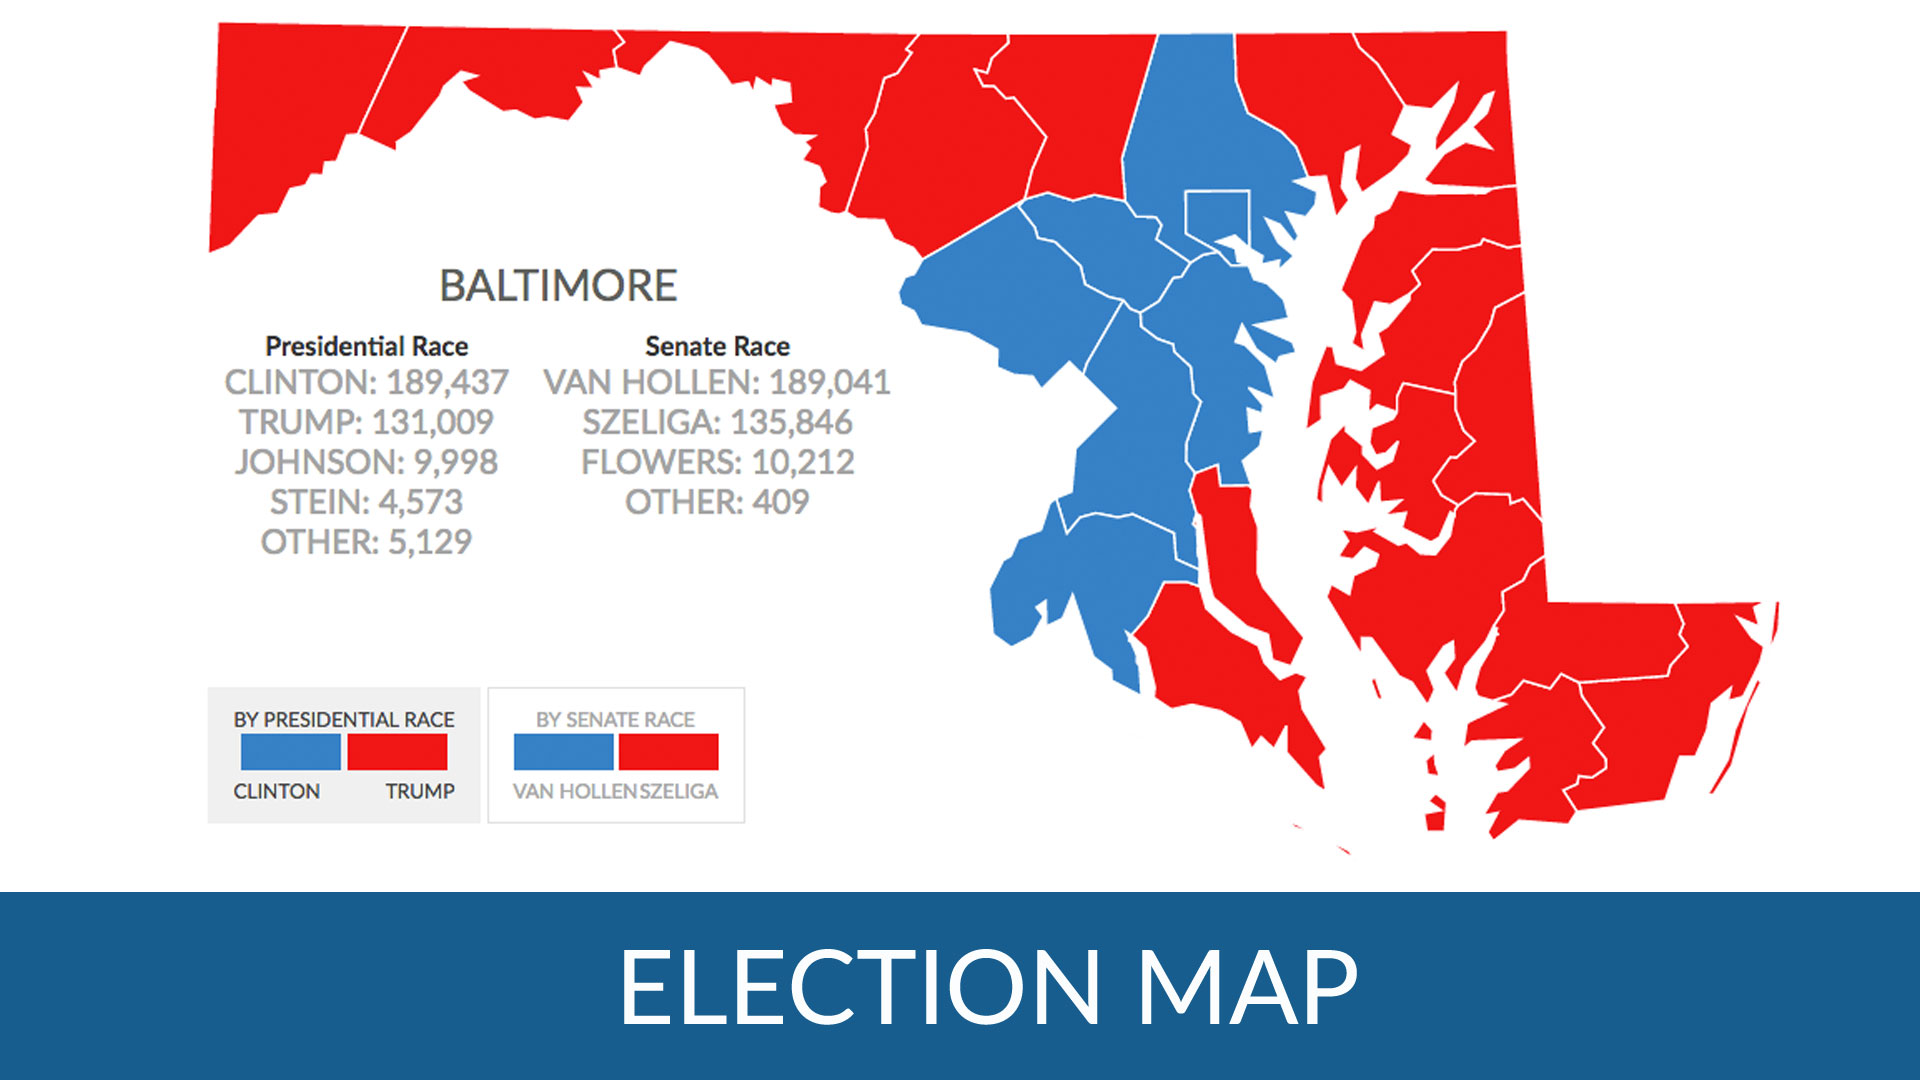 How Did Maryland Counties Vote In The 2016 Presidential